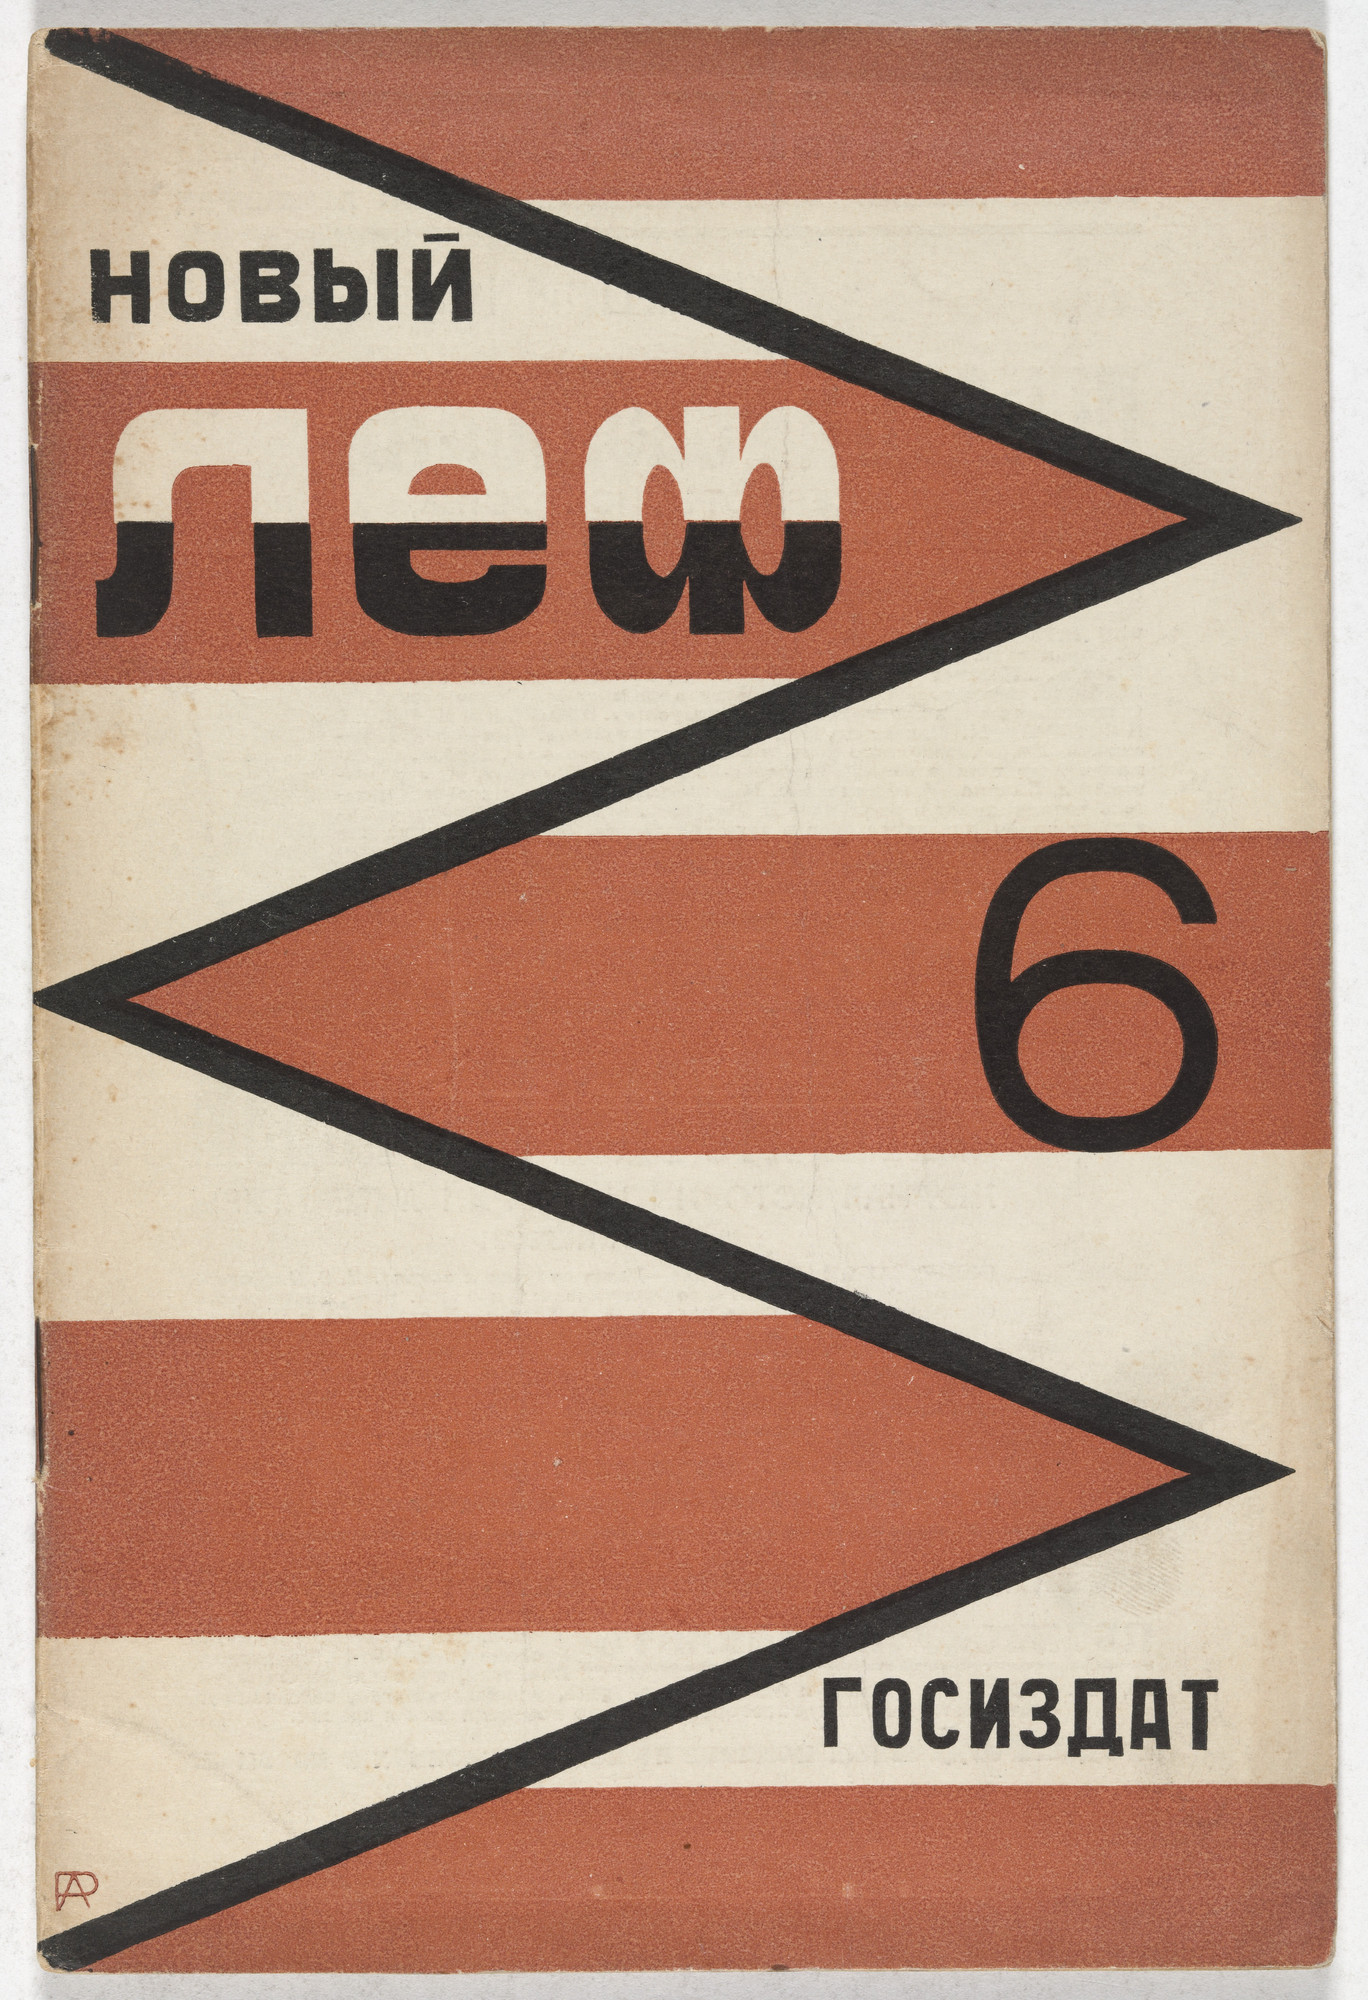 Aleksandr Rodchenko. Novyi LEF. Zhurnal levogo fronta iskusstv (New LEF: Journal of the Left Front of the Arts), no. 6. 1928